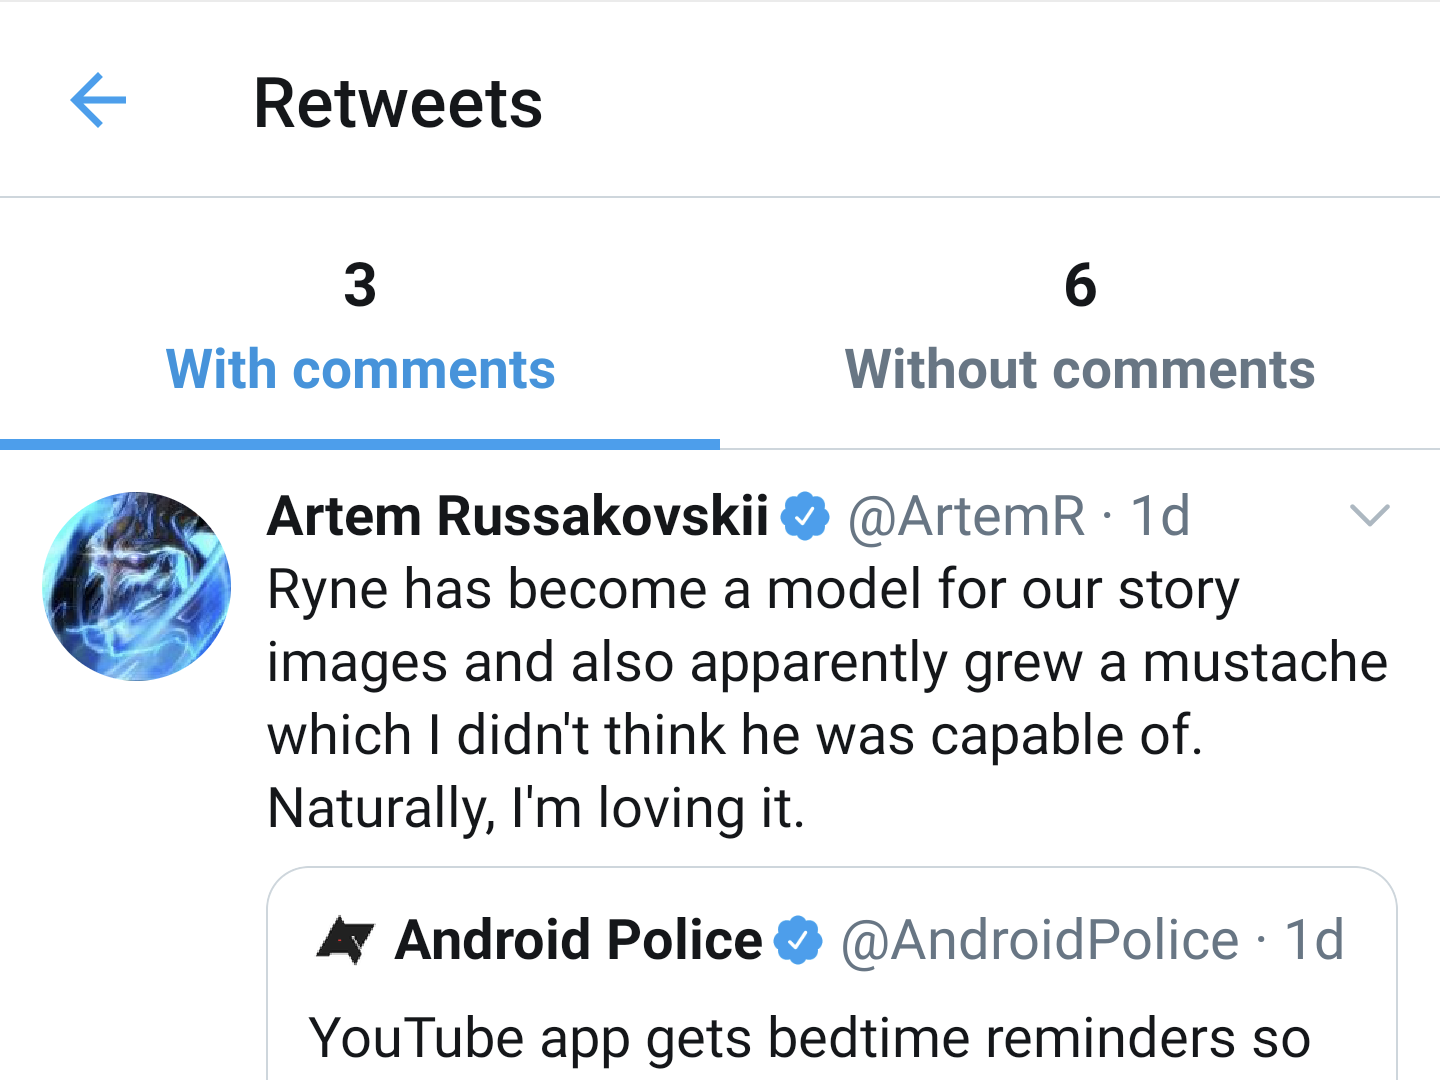 Twitter is rolling out separate 'Retweets with comments' tabbed UI on Android 1